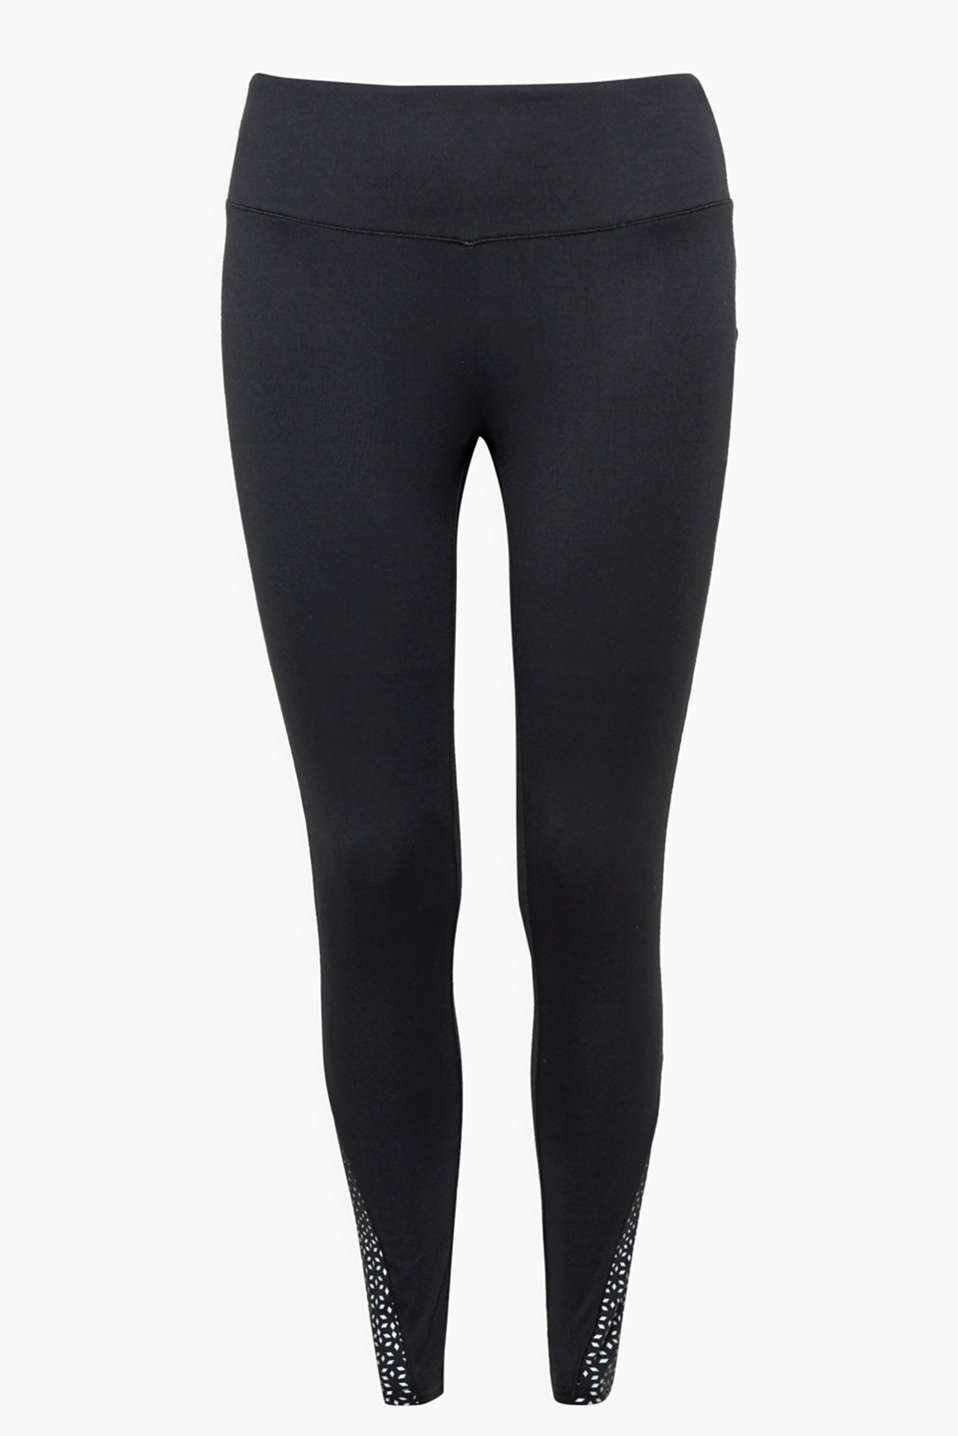 These active leggings with a reflective diamond print on the side hems jolt you into action!